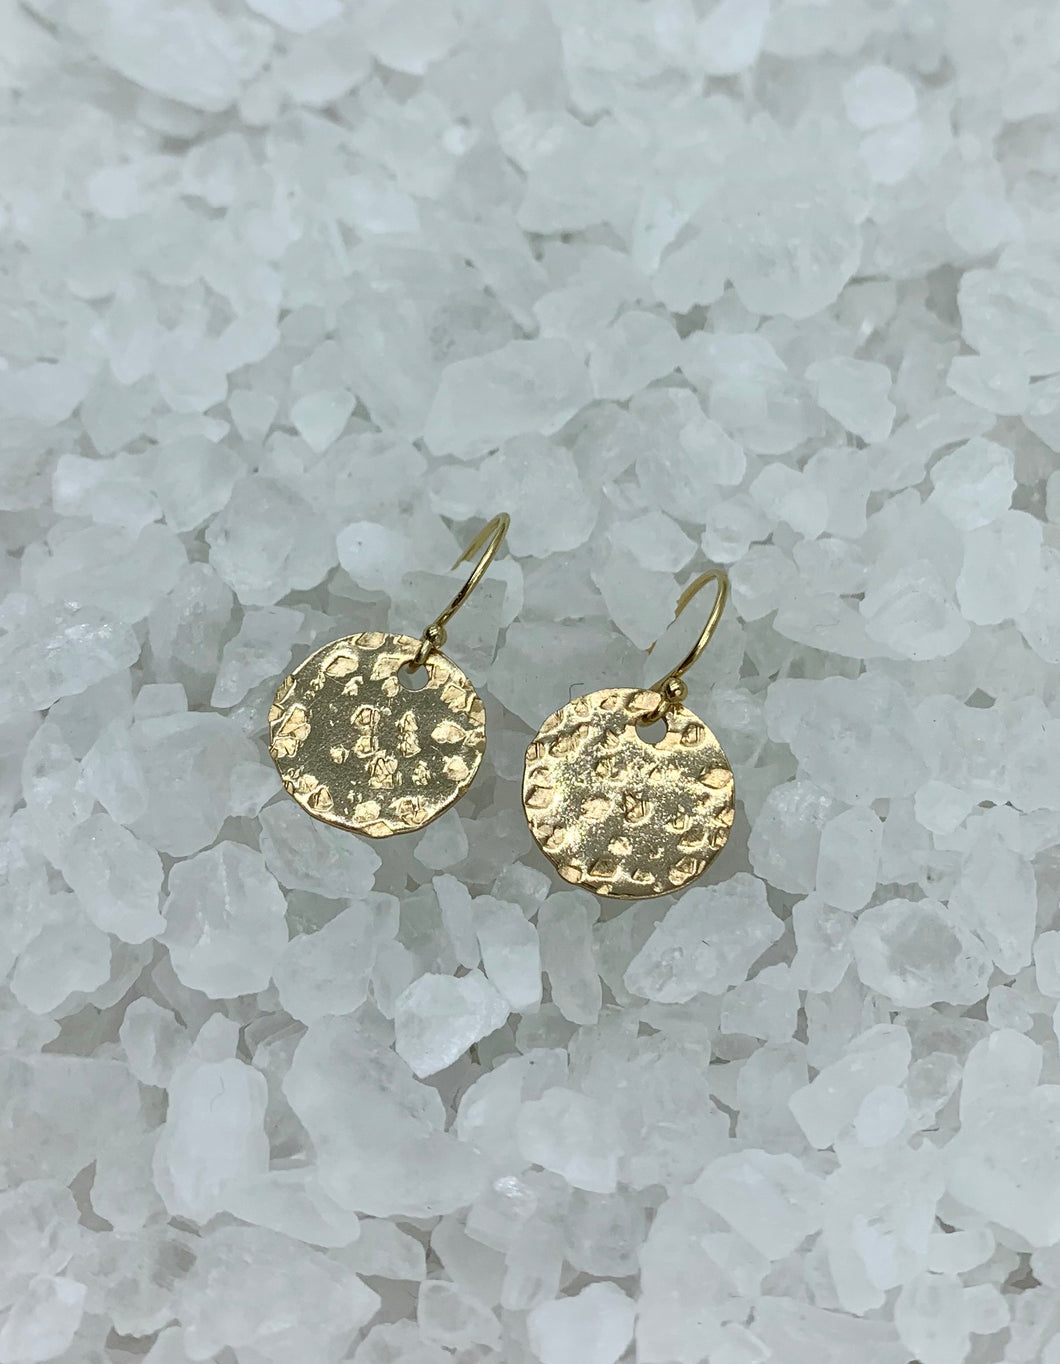 gold disc earrings, leopard pattern earrings, animal inspired earrings, hand hammered earrings, hnadmade earrings, handmade gold earrings, gold-fill disc earrings, Baskin earring, Jungle chic